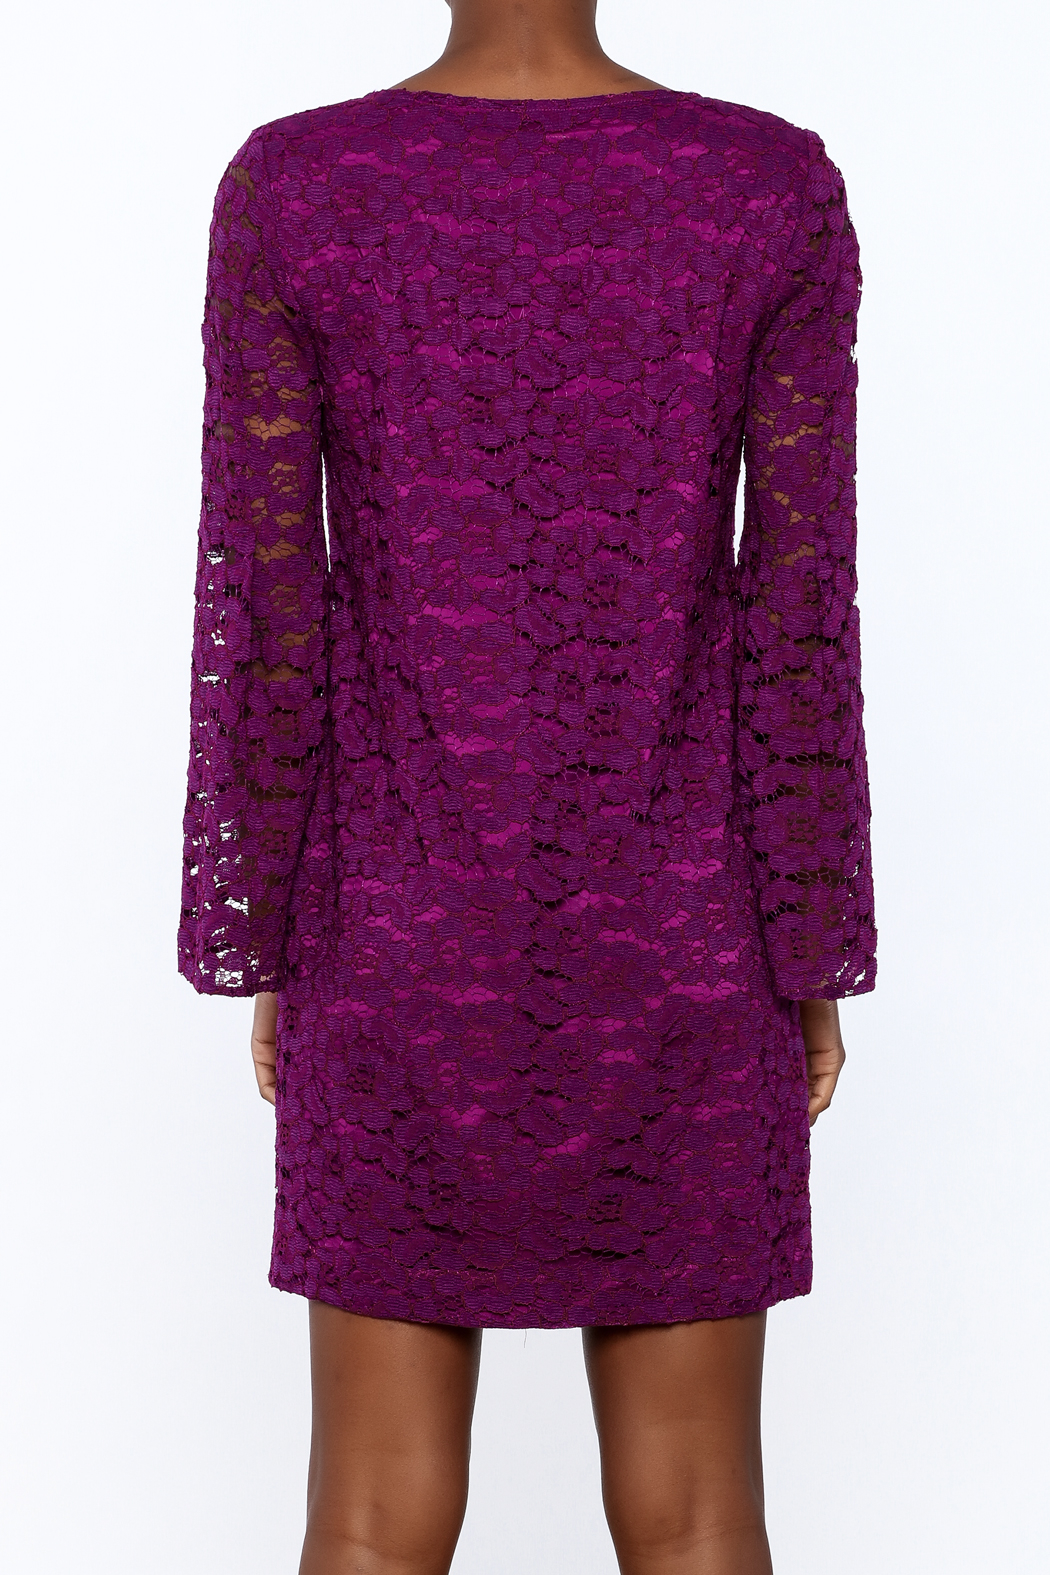 Trina Turk Purple Revue Dress - Back Cropped Image